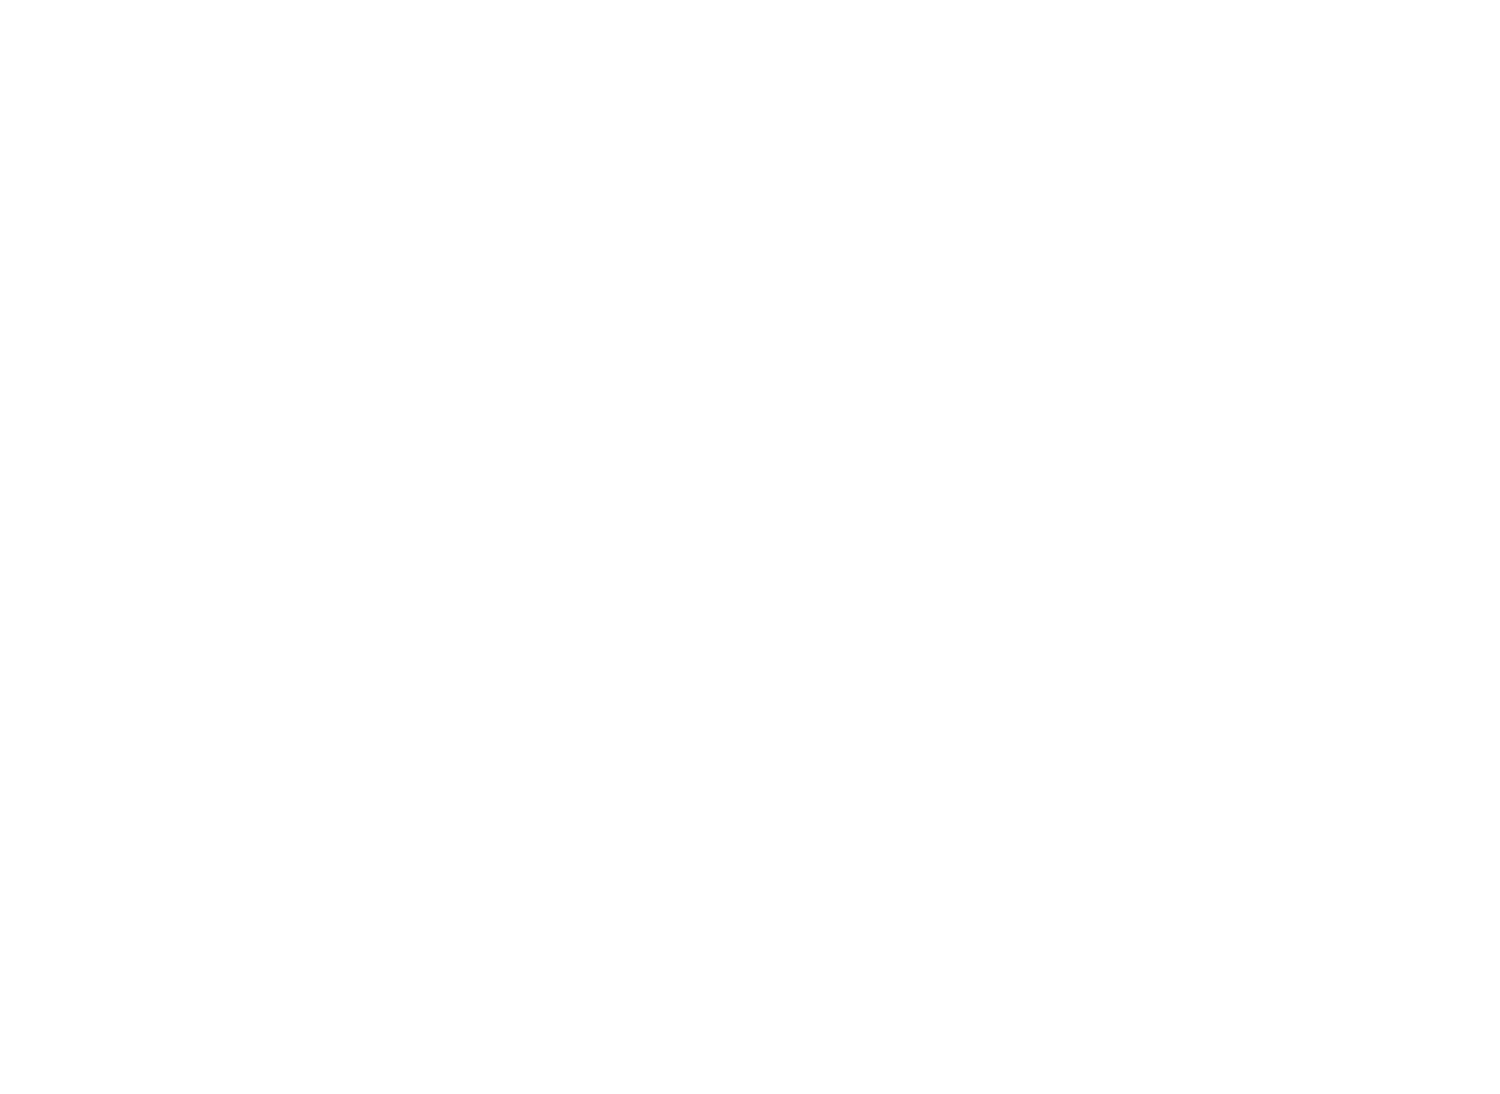 Great Lord Owl